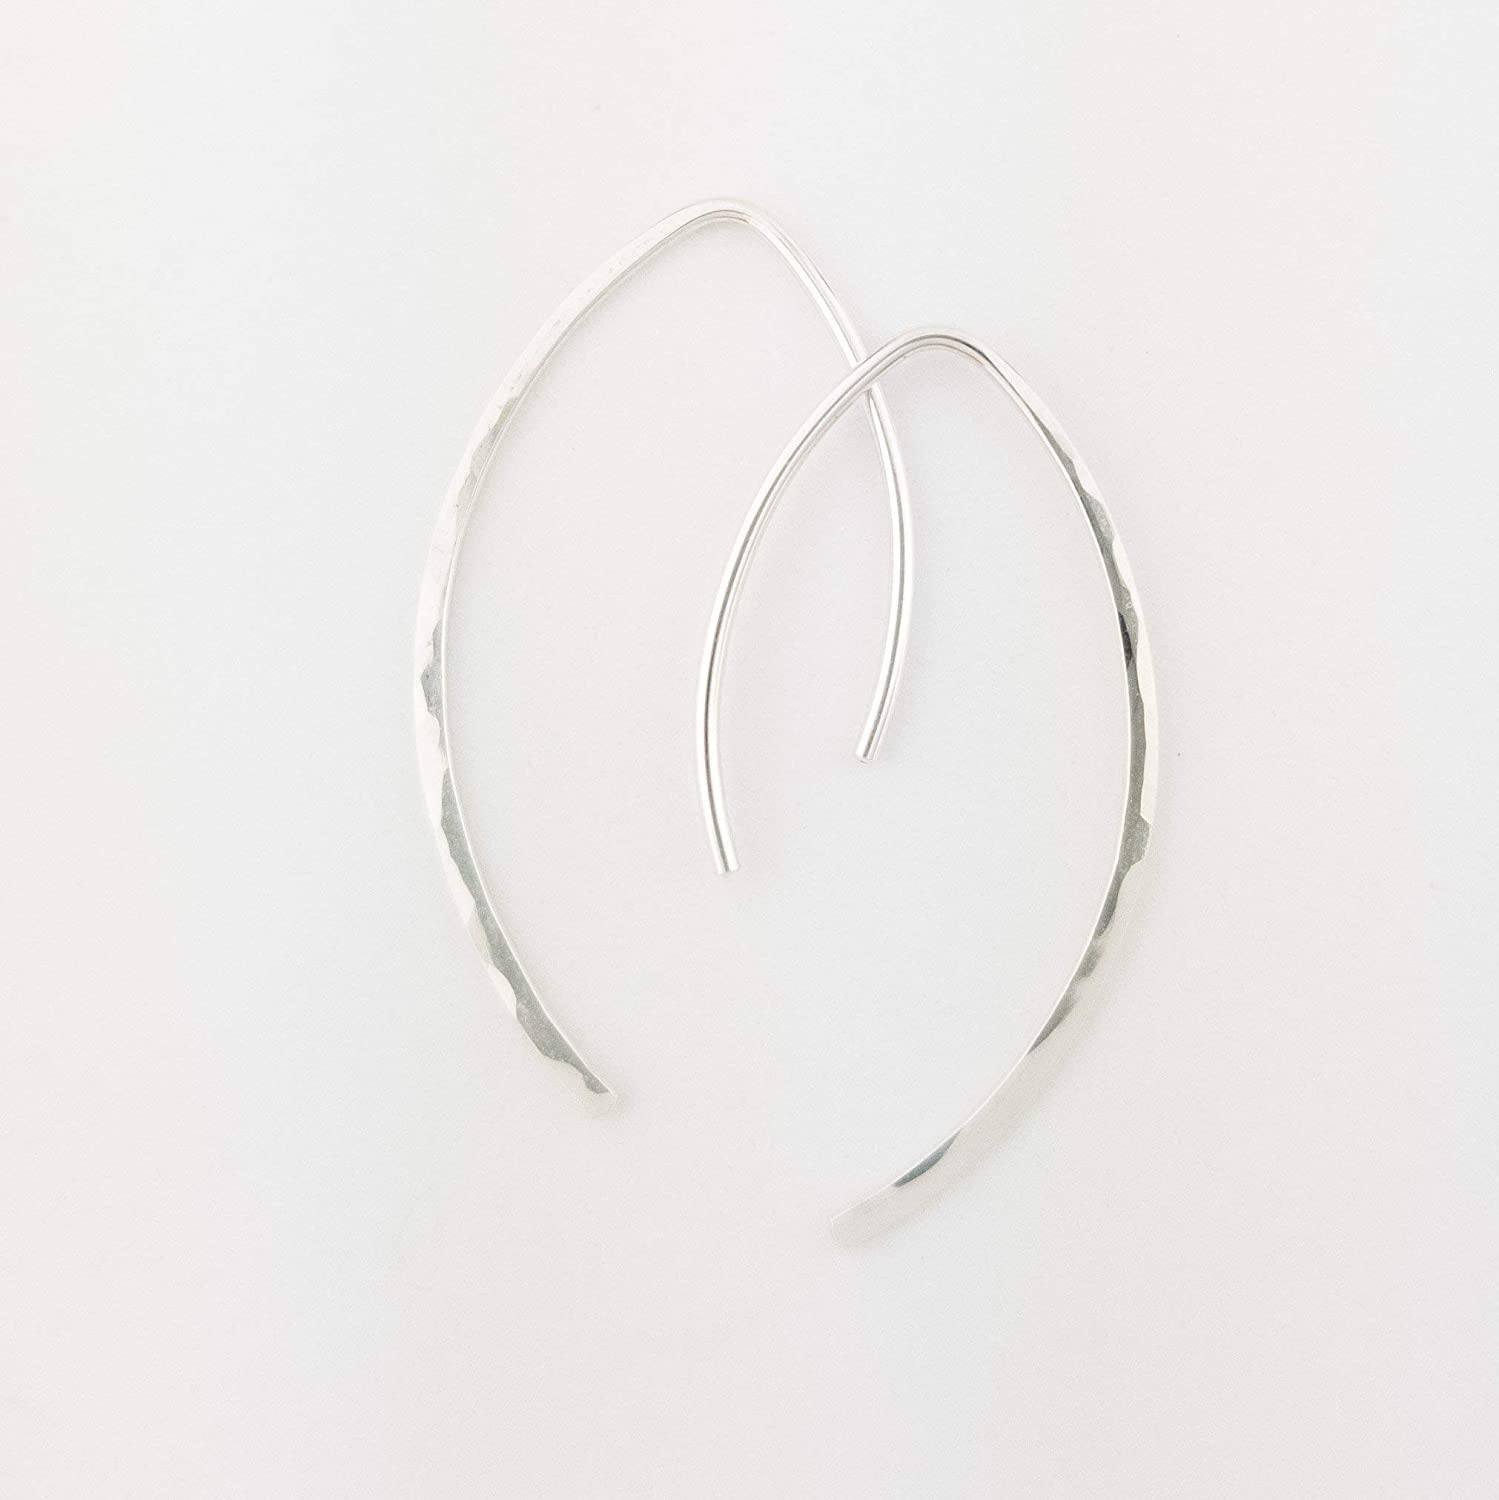 "1"" Thin Sterling Silver Hammered Threader Earrings Open Hoop 20 Gauge (.8mm)"